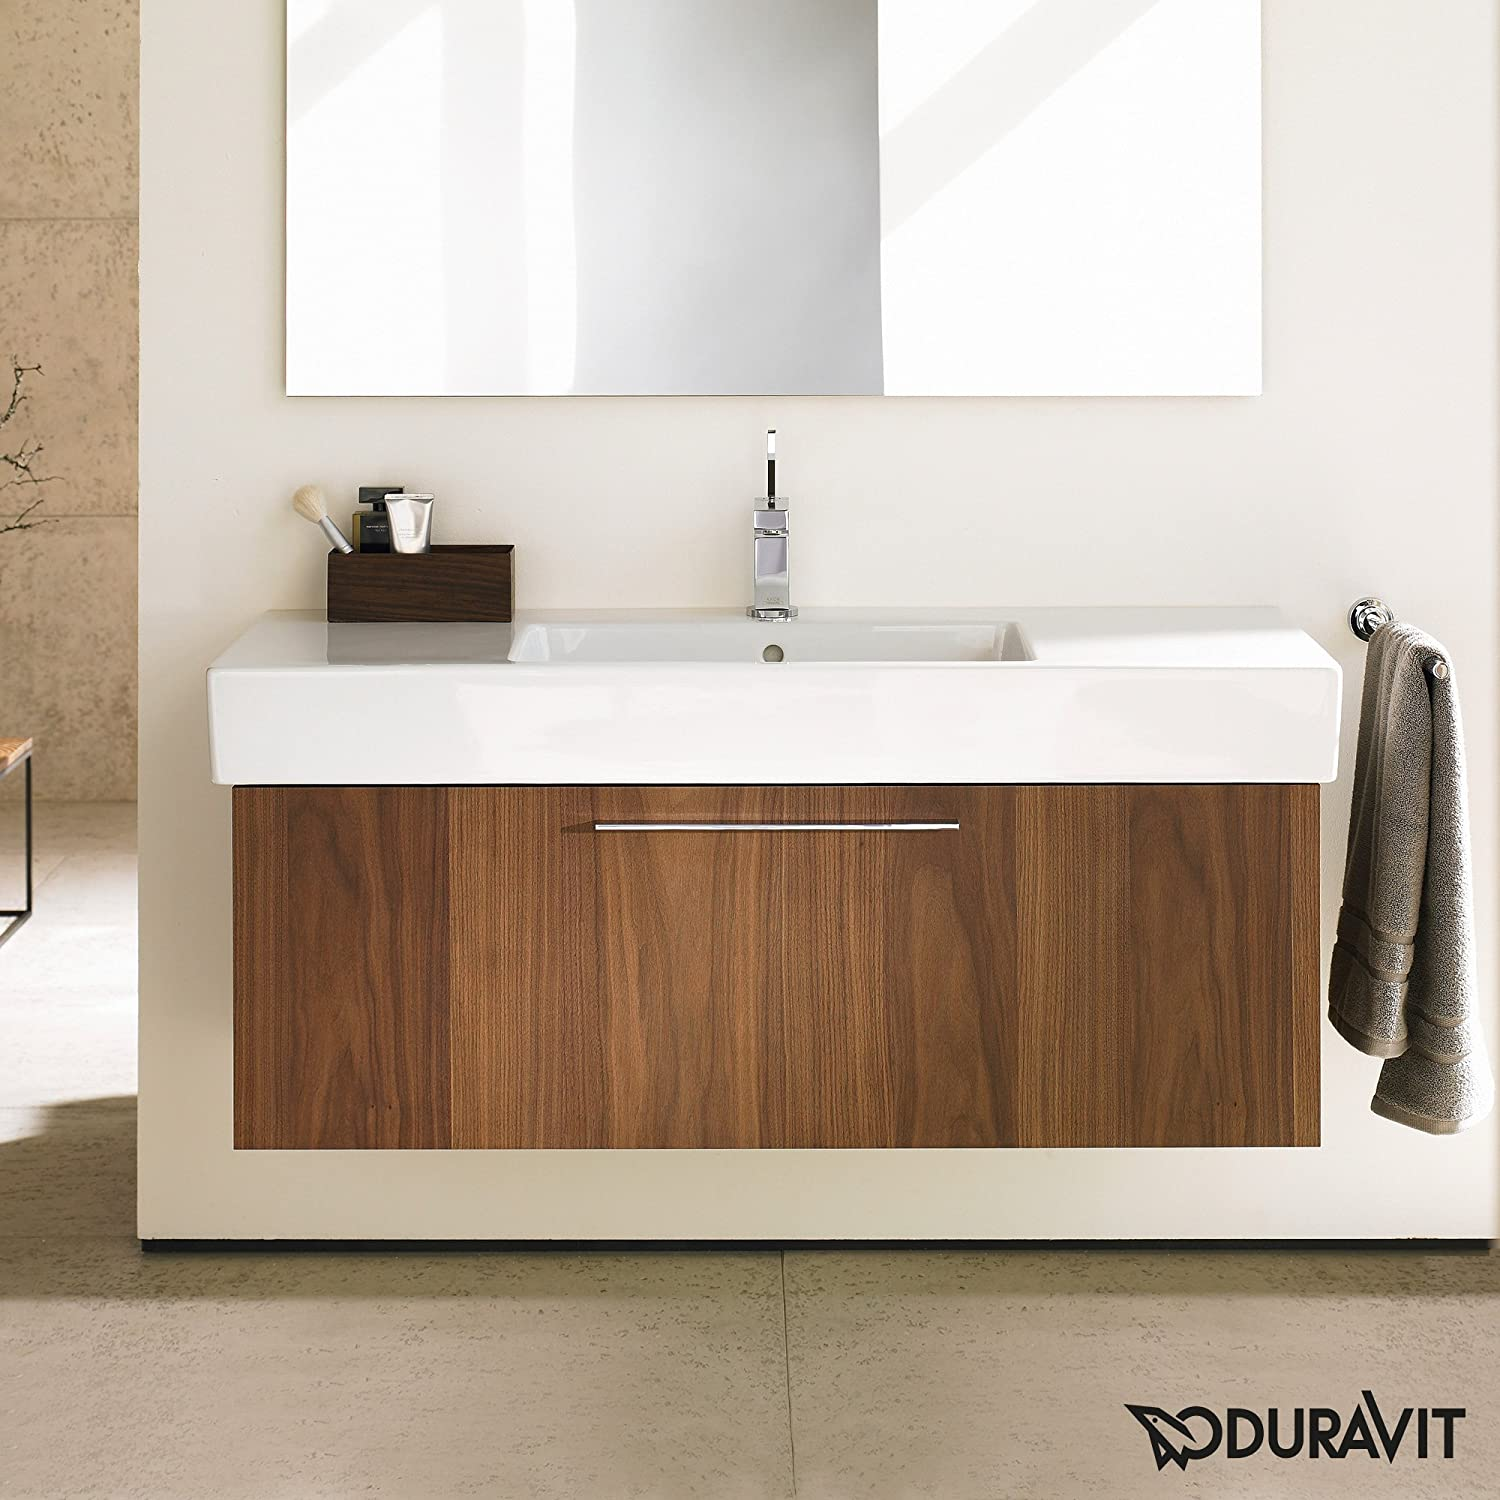 Amazon.com: Duravit FO957301313 Vanity Unit for Vero 032910 ...